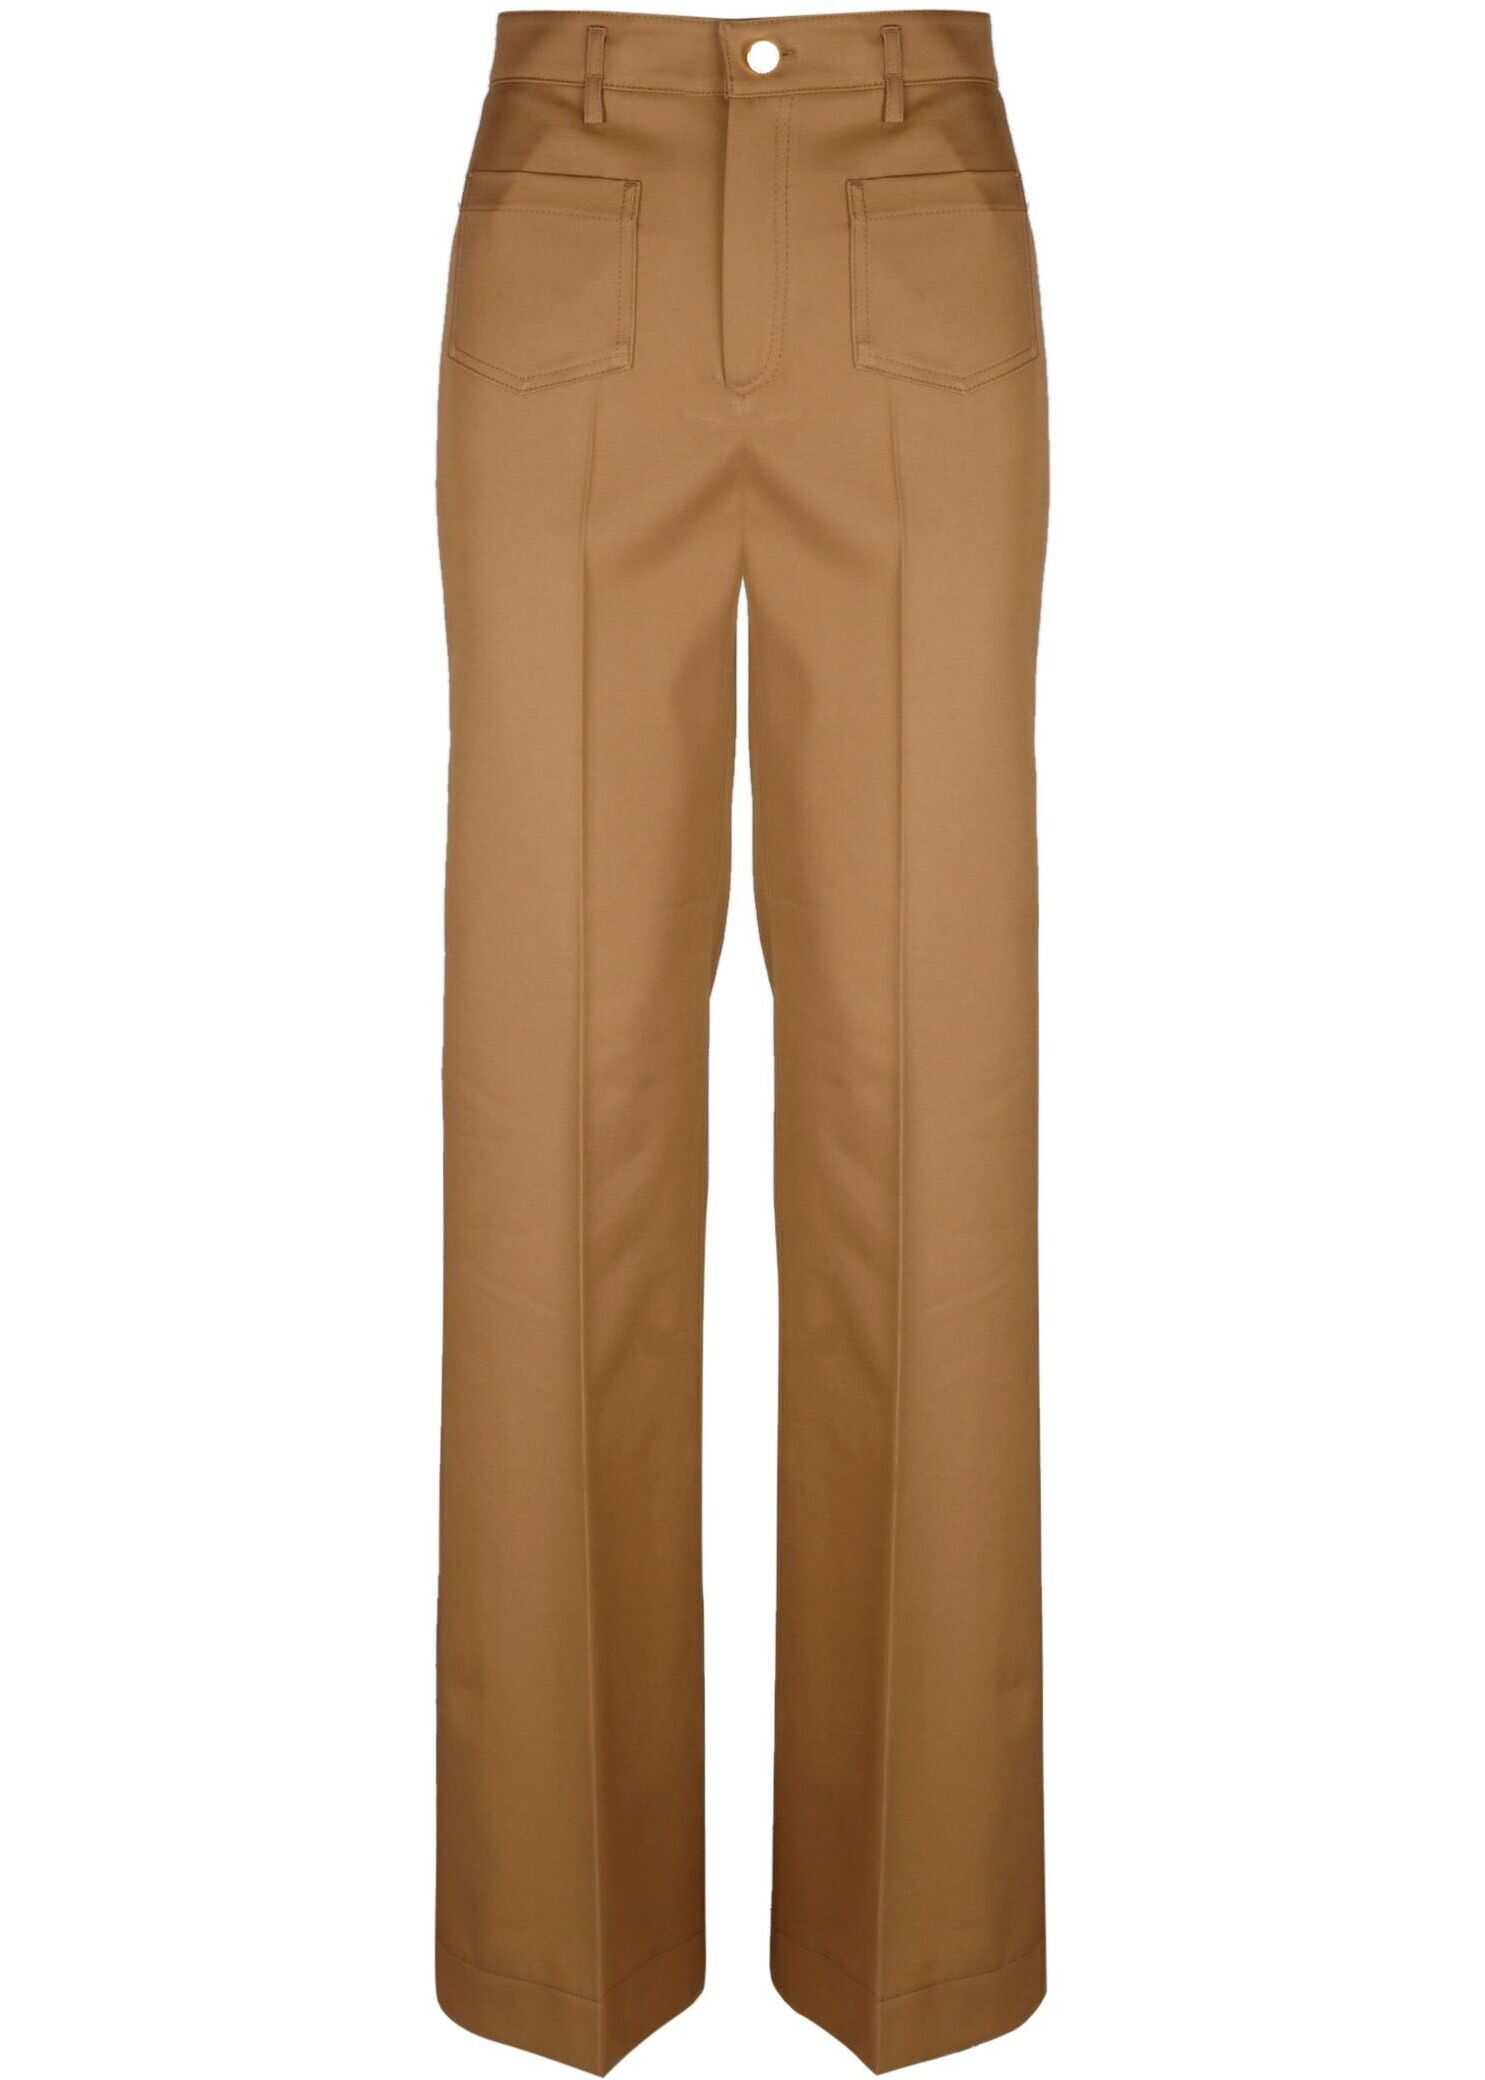 RED VALENTINO Cotton Pants BROWN